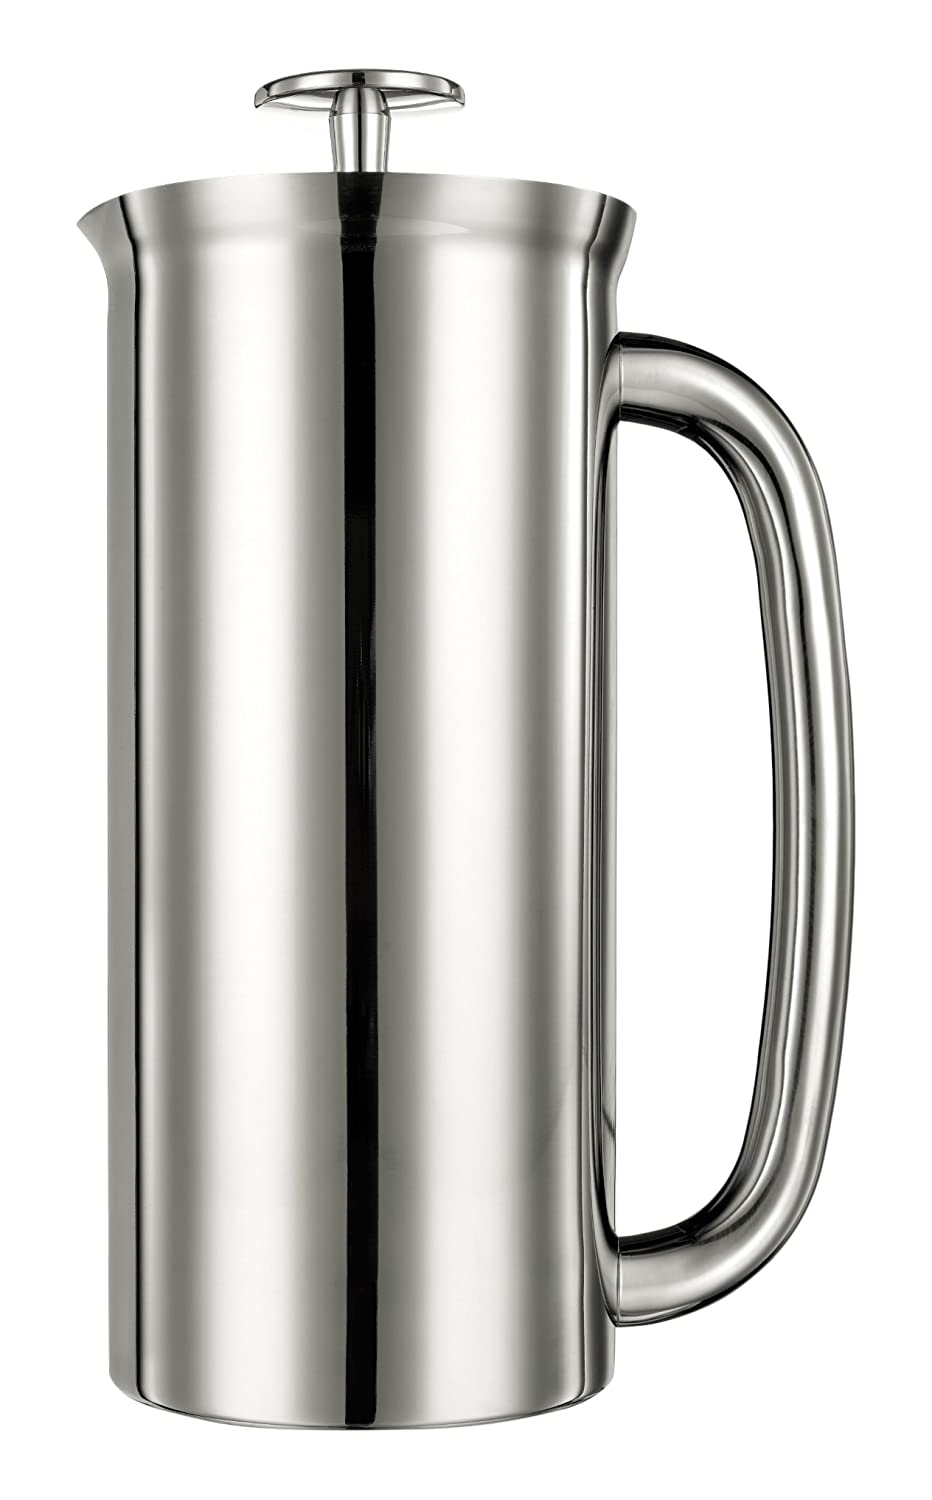 ESPRO French Press P7, Brushed Stainless Steel, Edelstahl, 550 ml 1118C2